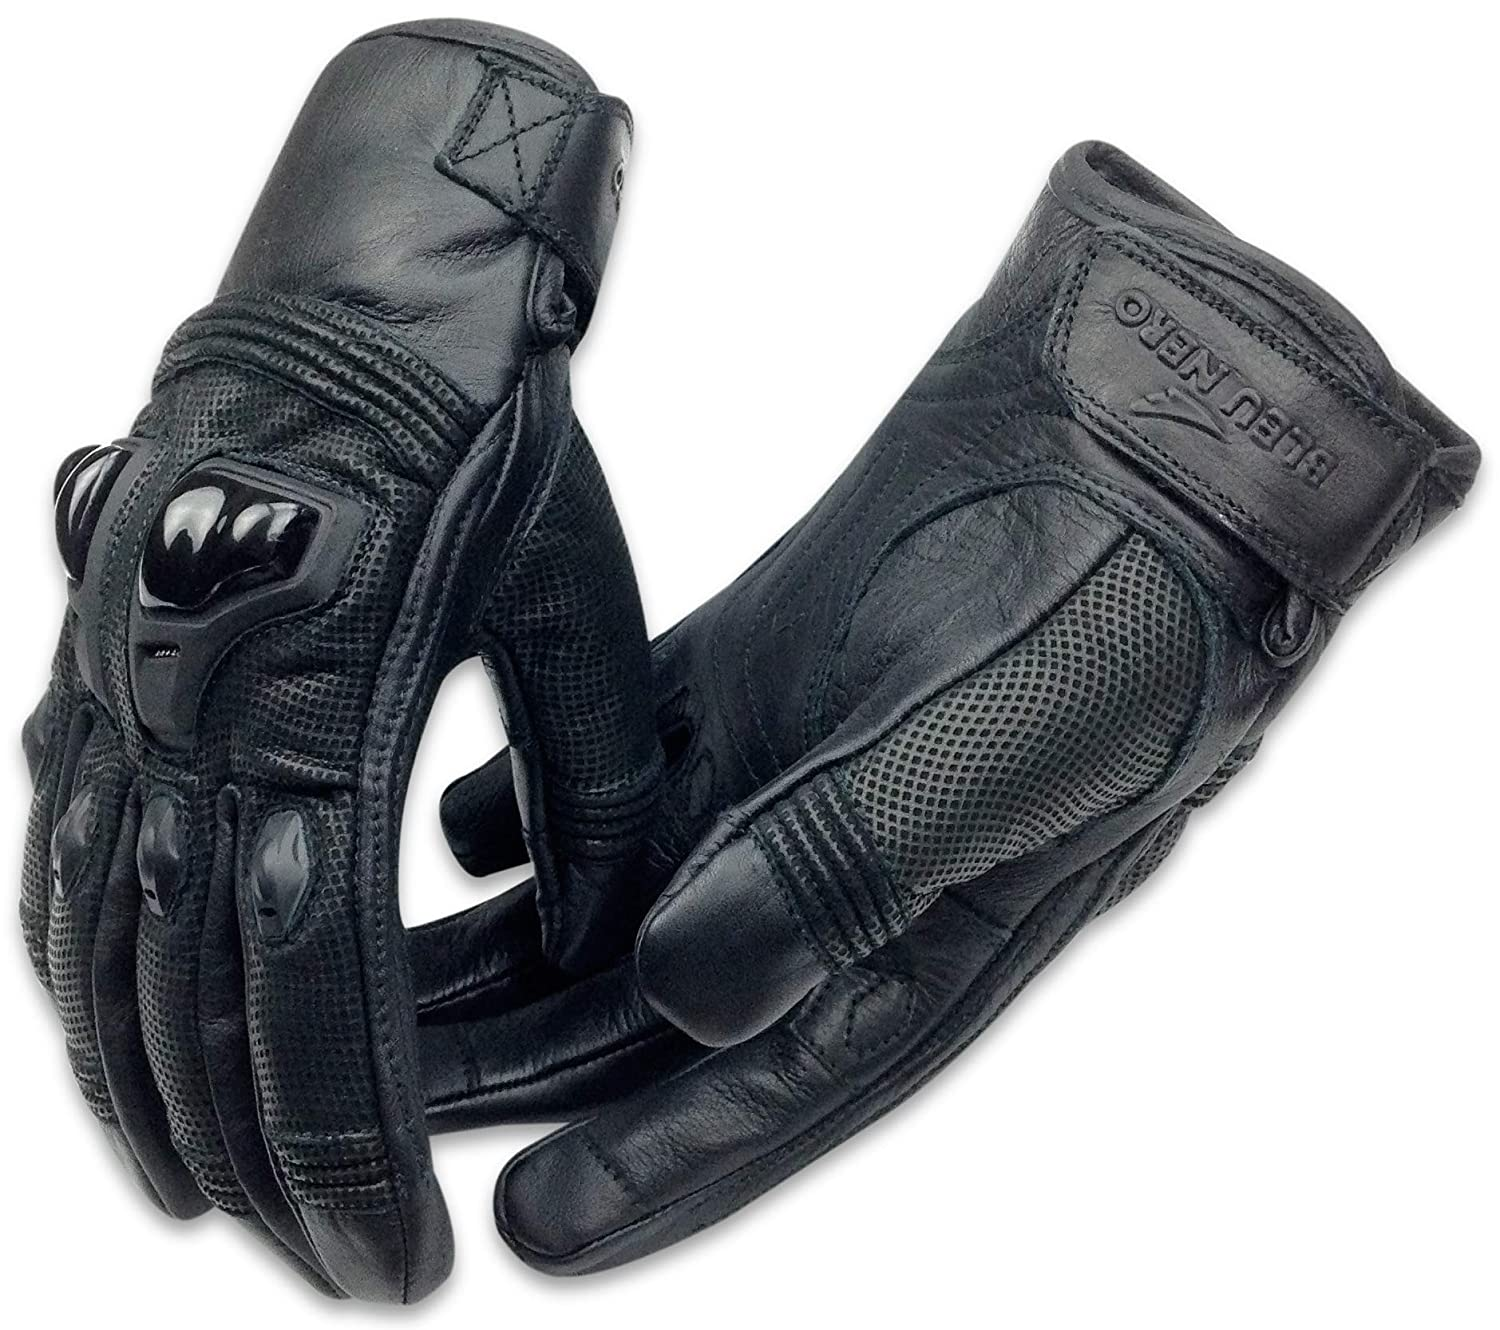 Genuine Leather Motorcycle Gloves Cowhide Biker Riding Hard Knuckle Gloves Mens